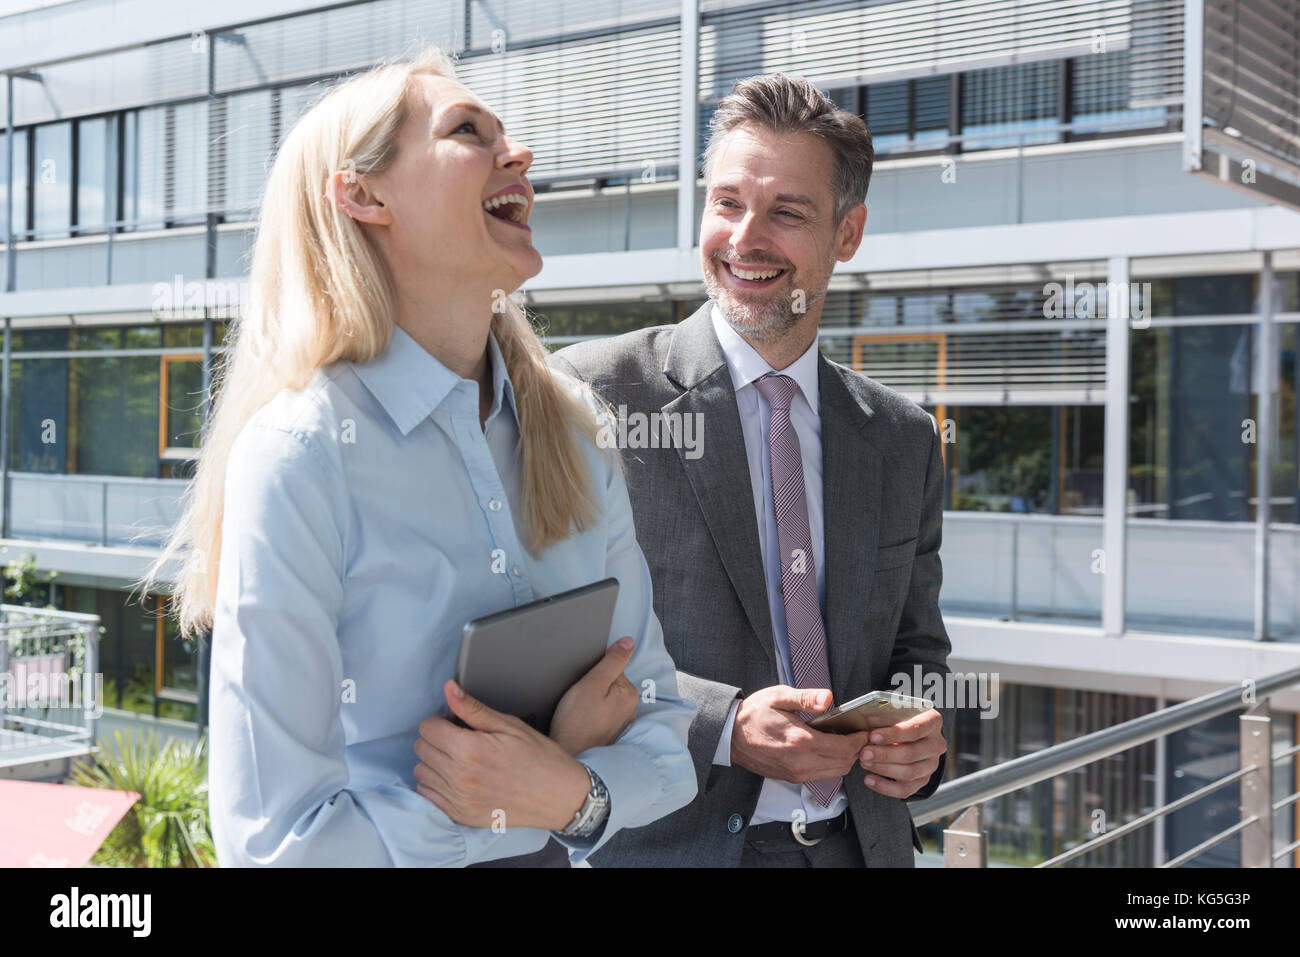 Businessman and businesswoman stand laughingly on a balcony in front of office - Stock Image